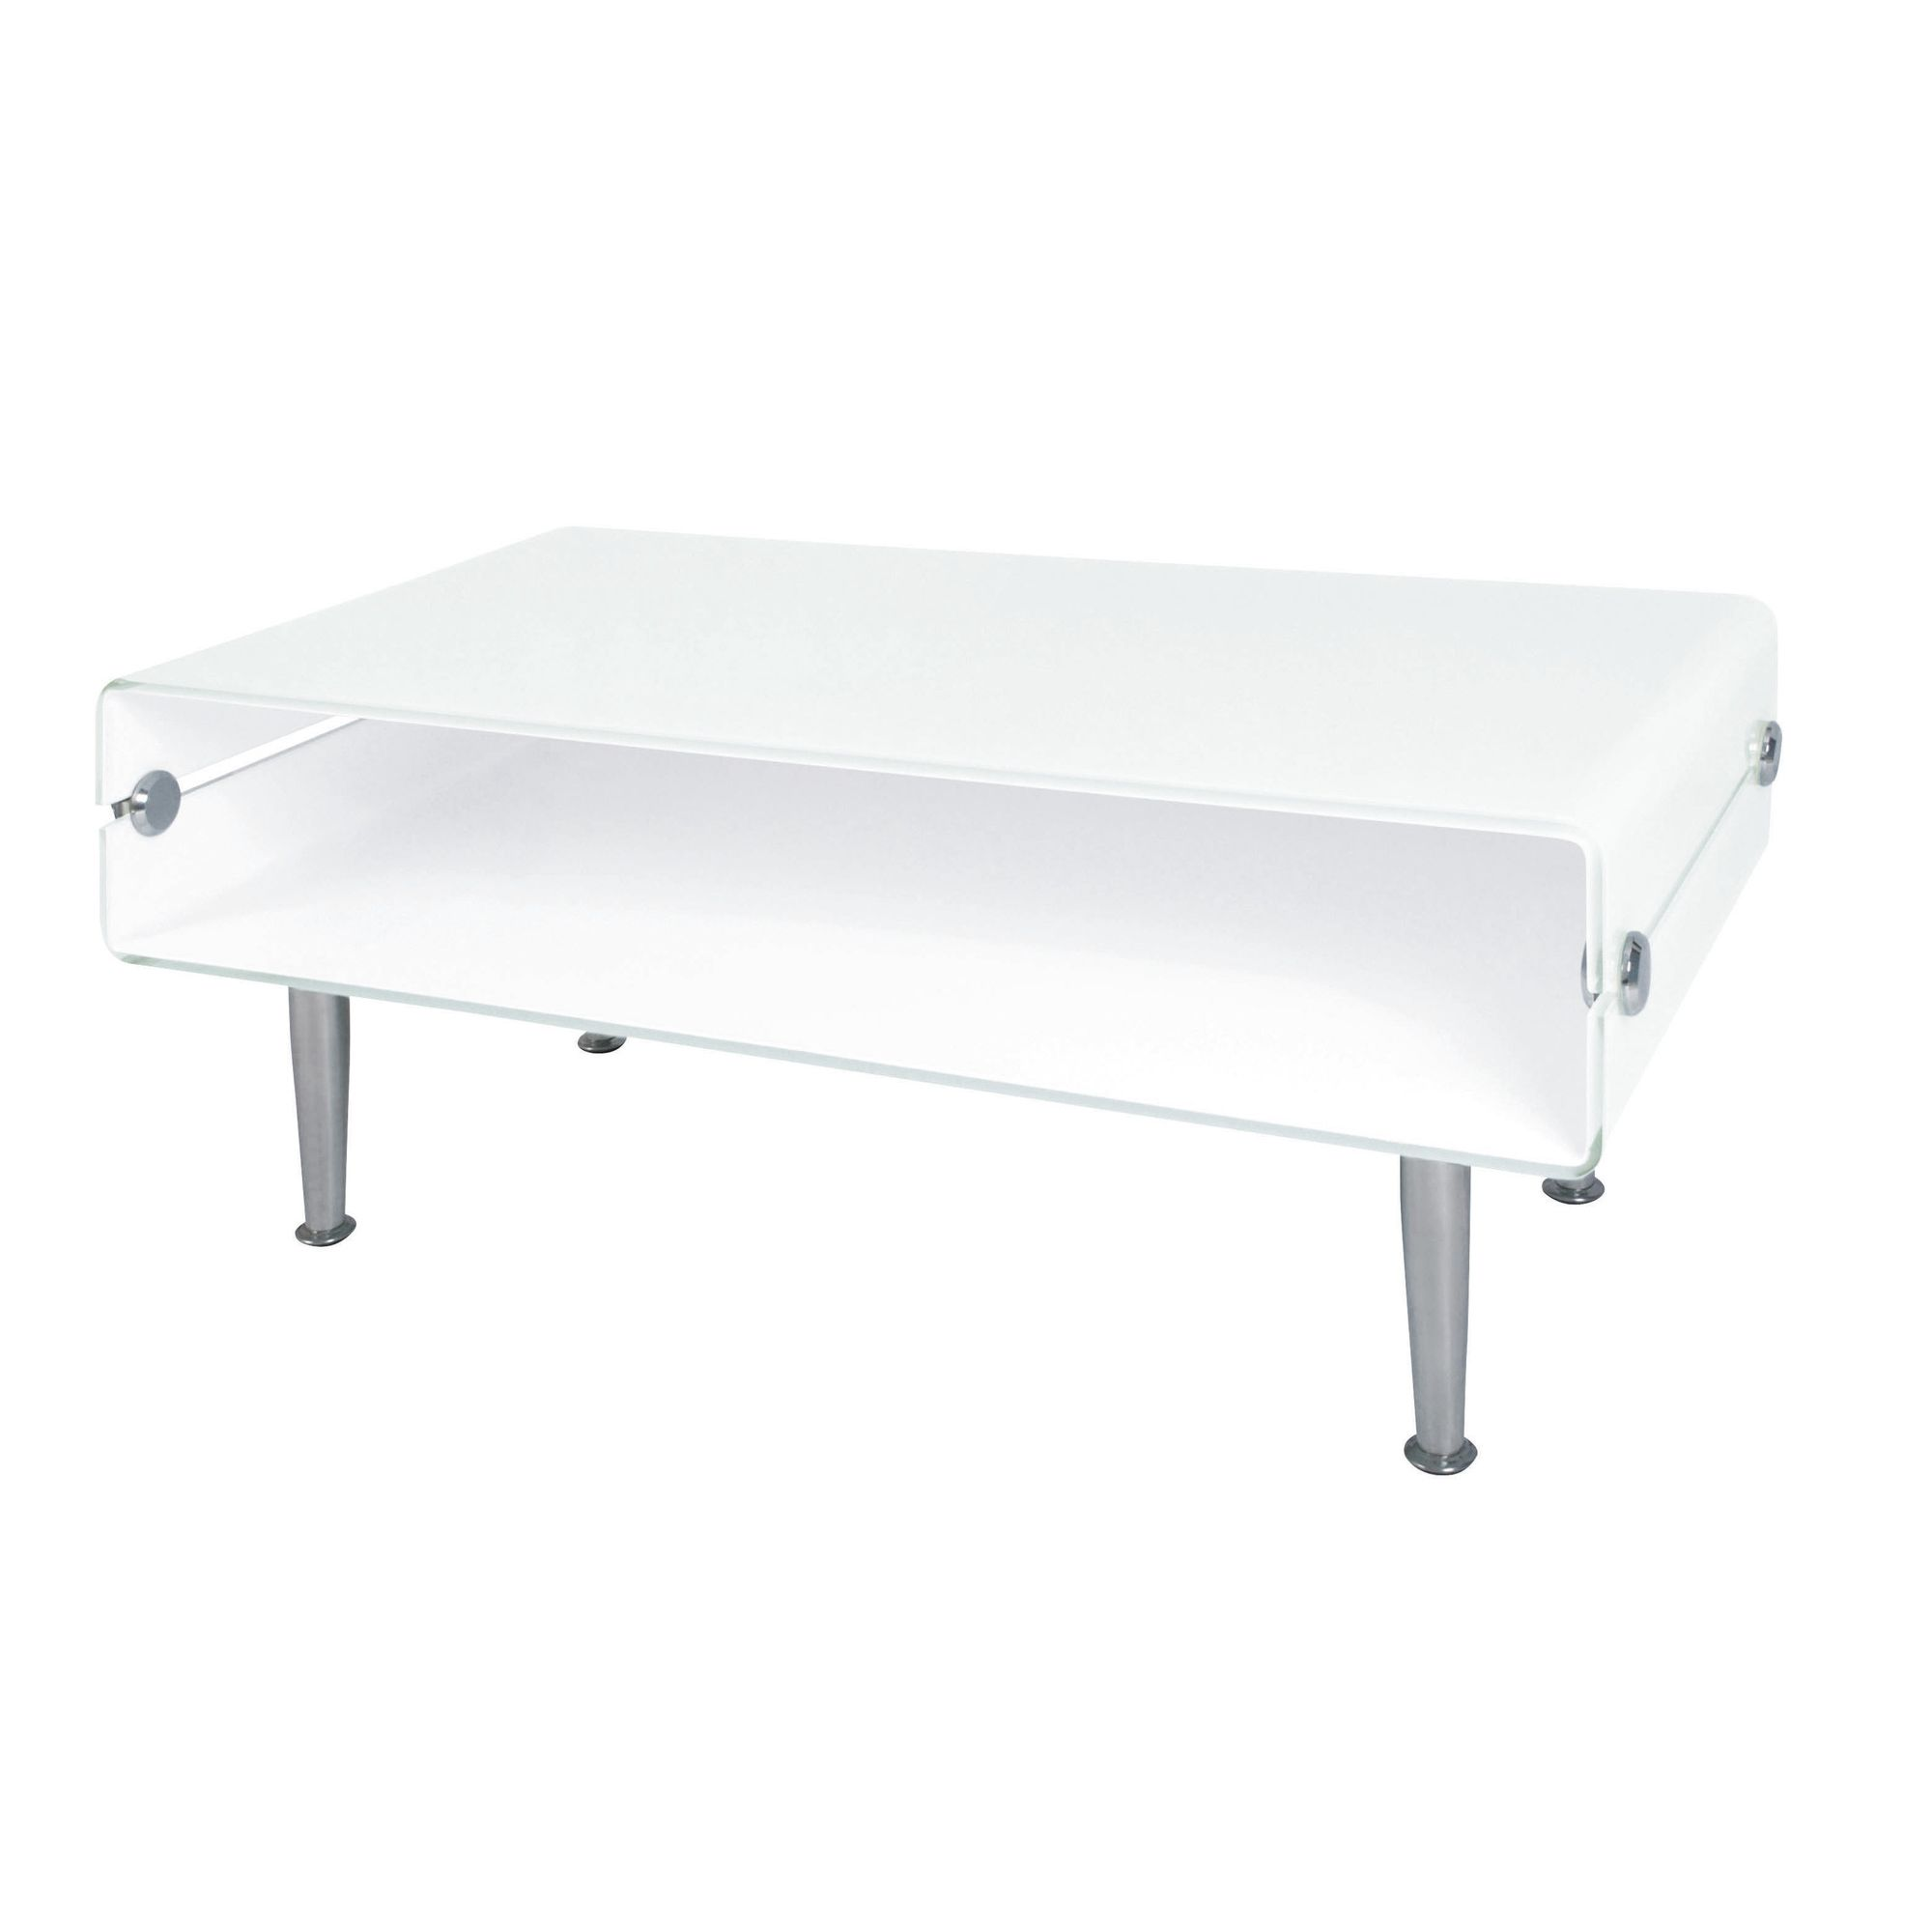 Premier Housewares Two Tier Coffee Table at Tesco Direct